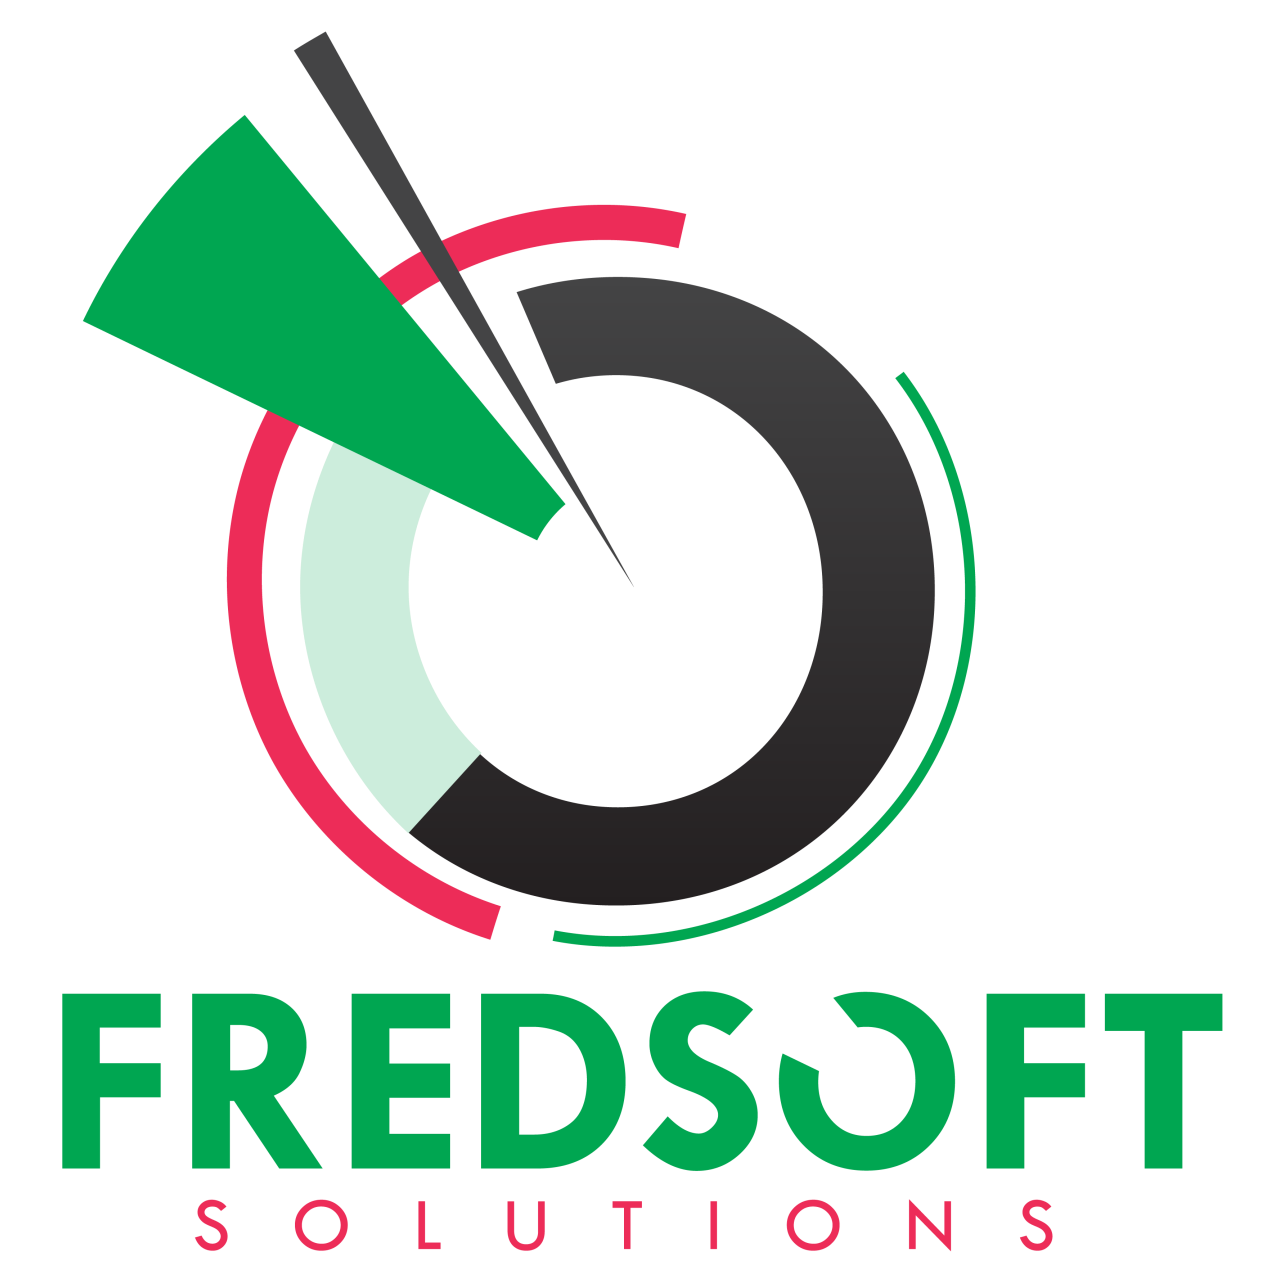 Fredsoft Solutions